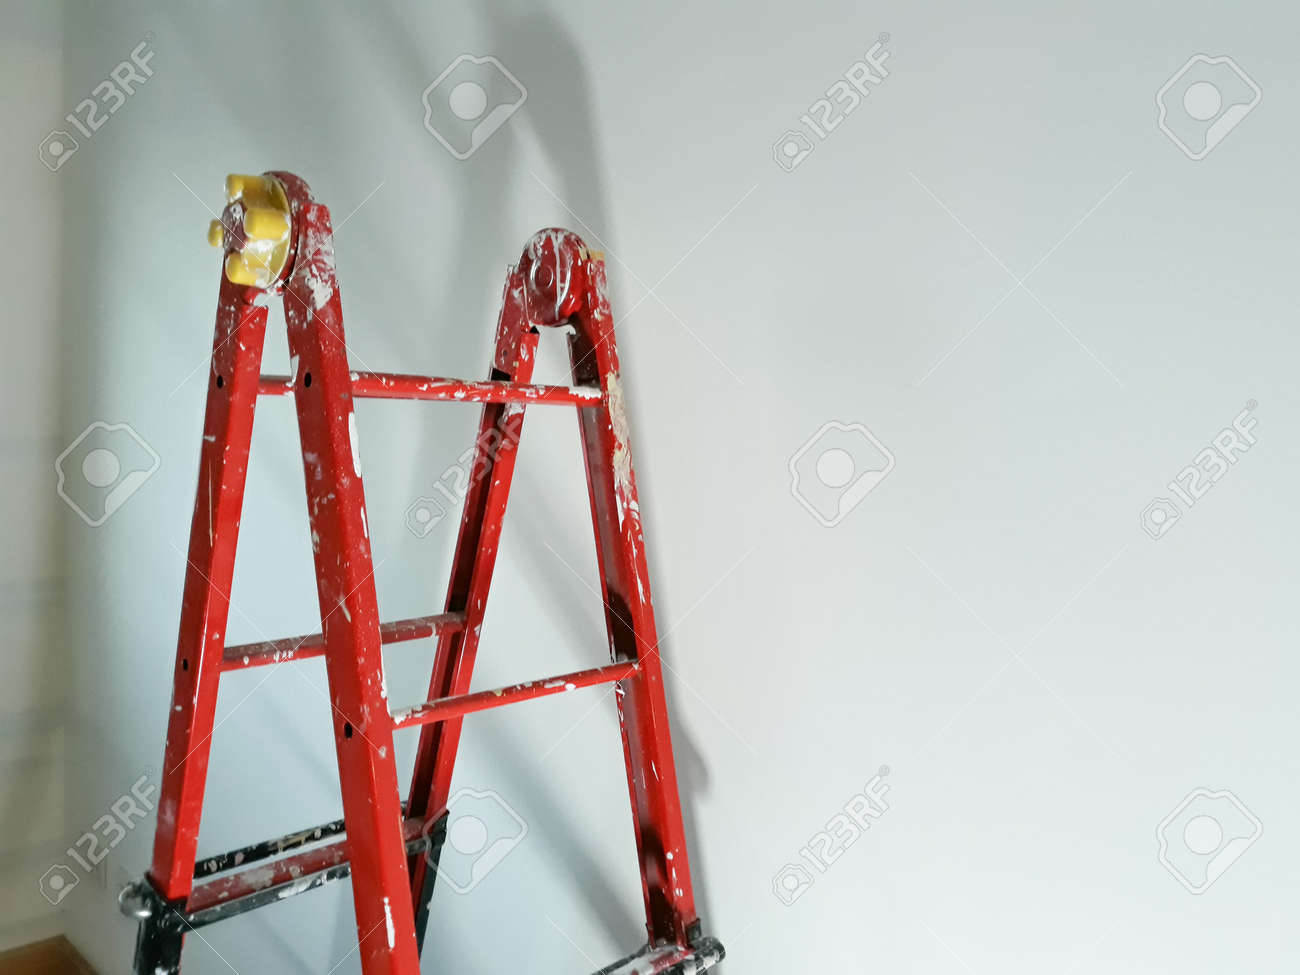 Different Angles Of A Painter S Ladder In A Room To Be Refurbished Stock Photo Picture And Royalty Free Image Image 92580329